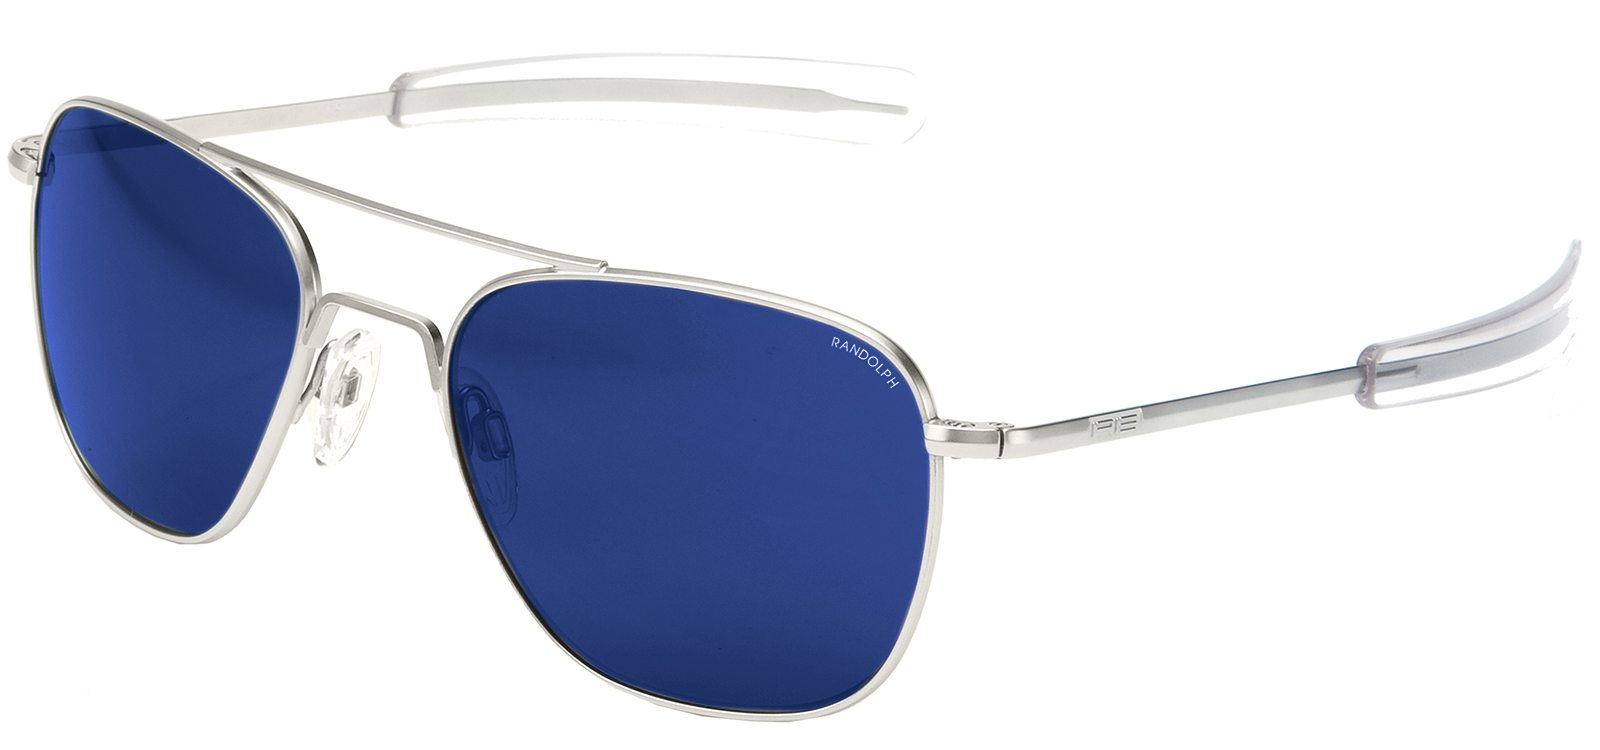 New Randolph Aviator Sunglasses Matte Chrome Frame Blue Sky Flash Mirror Lenses